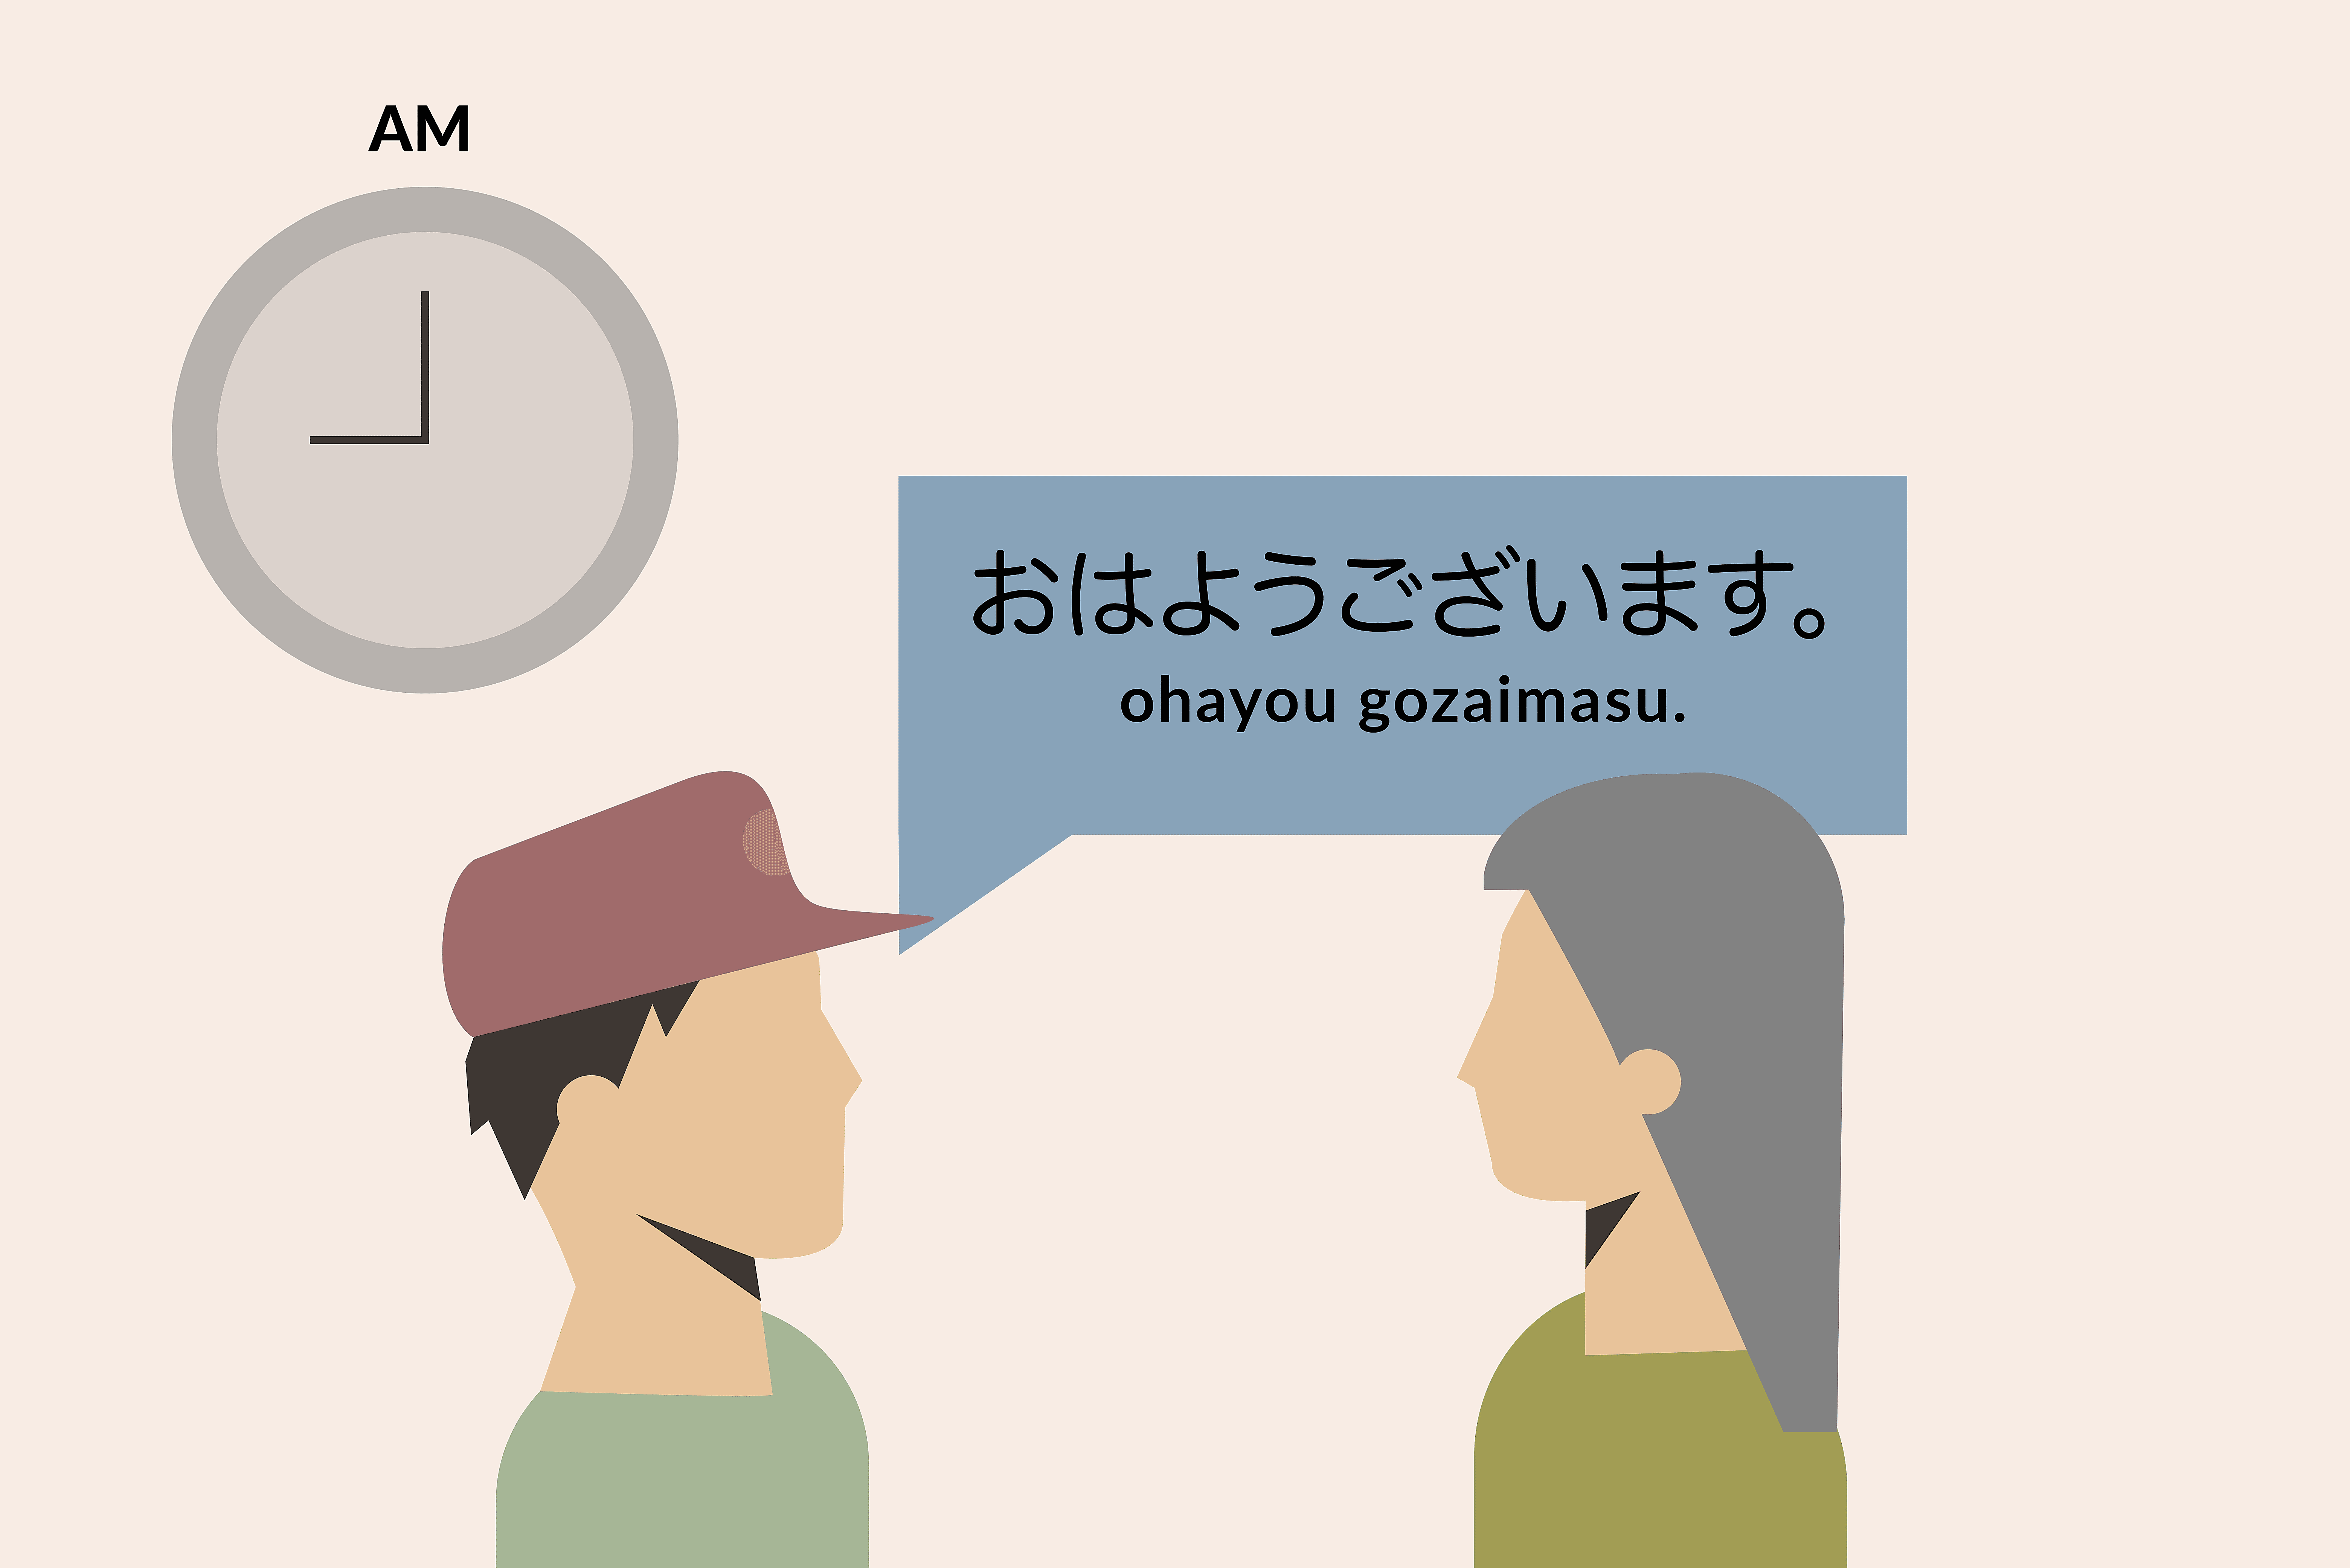 Good morning and other common japanese greetings good morning and other common japanese greetings kristyandbryce Choice Image